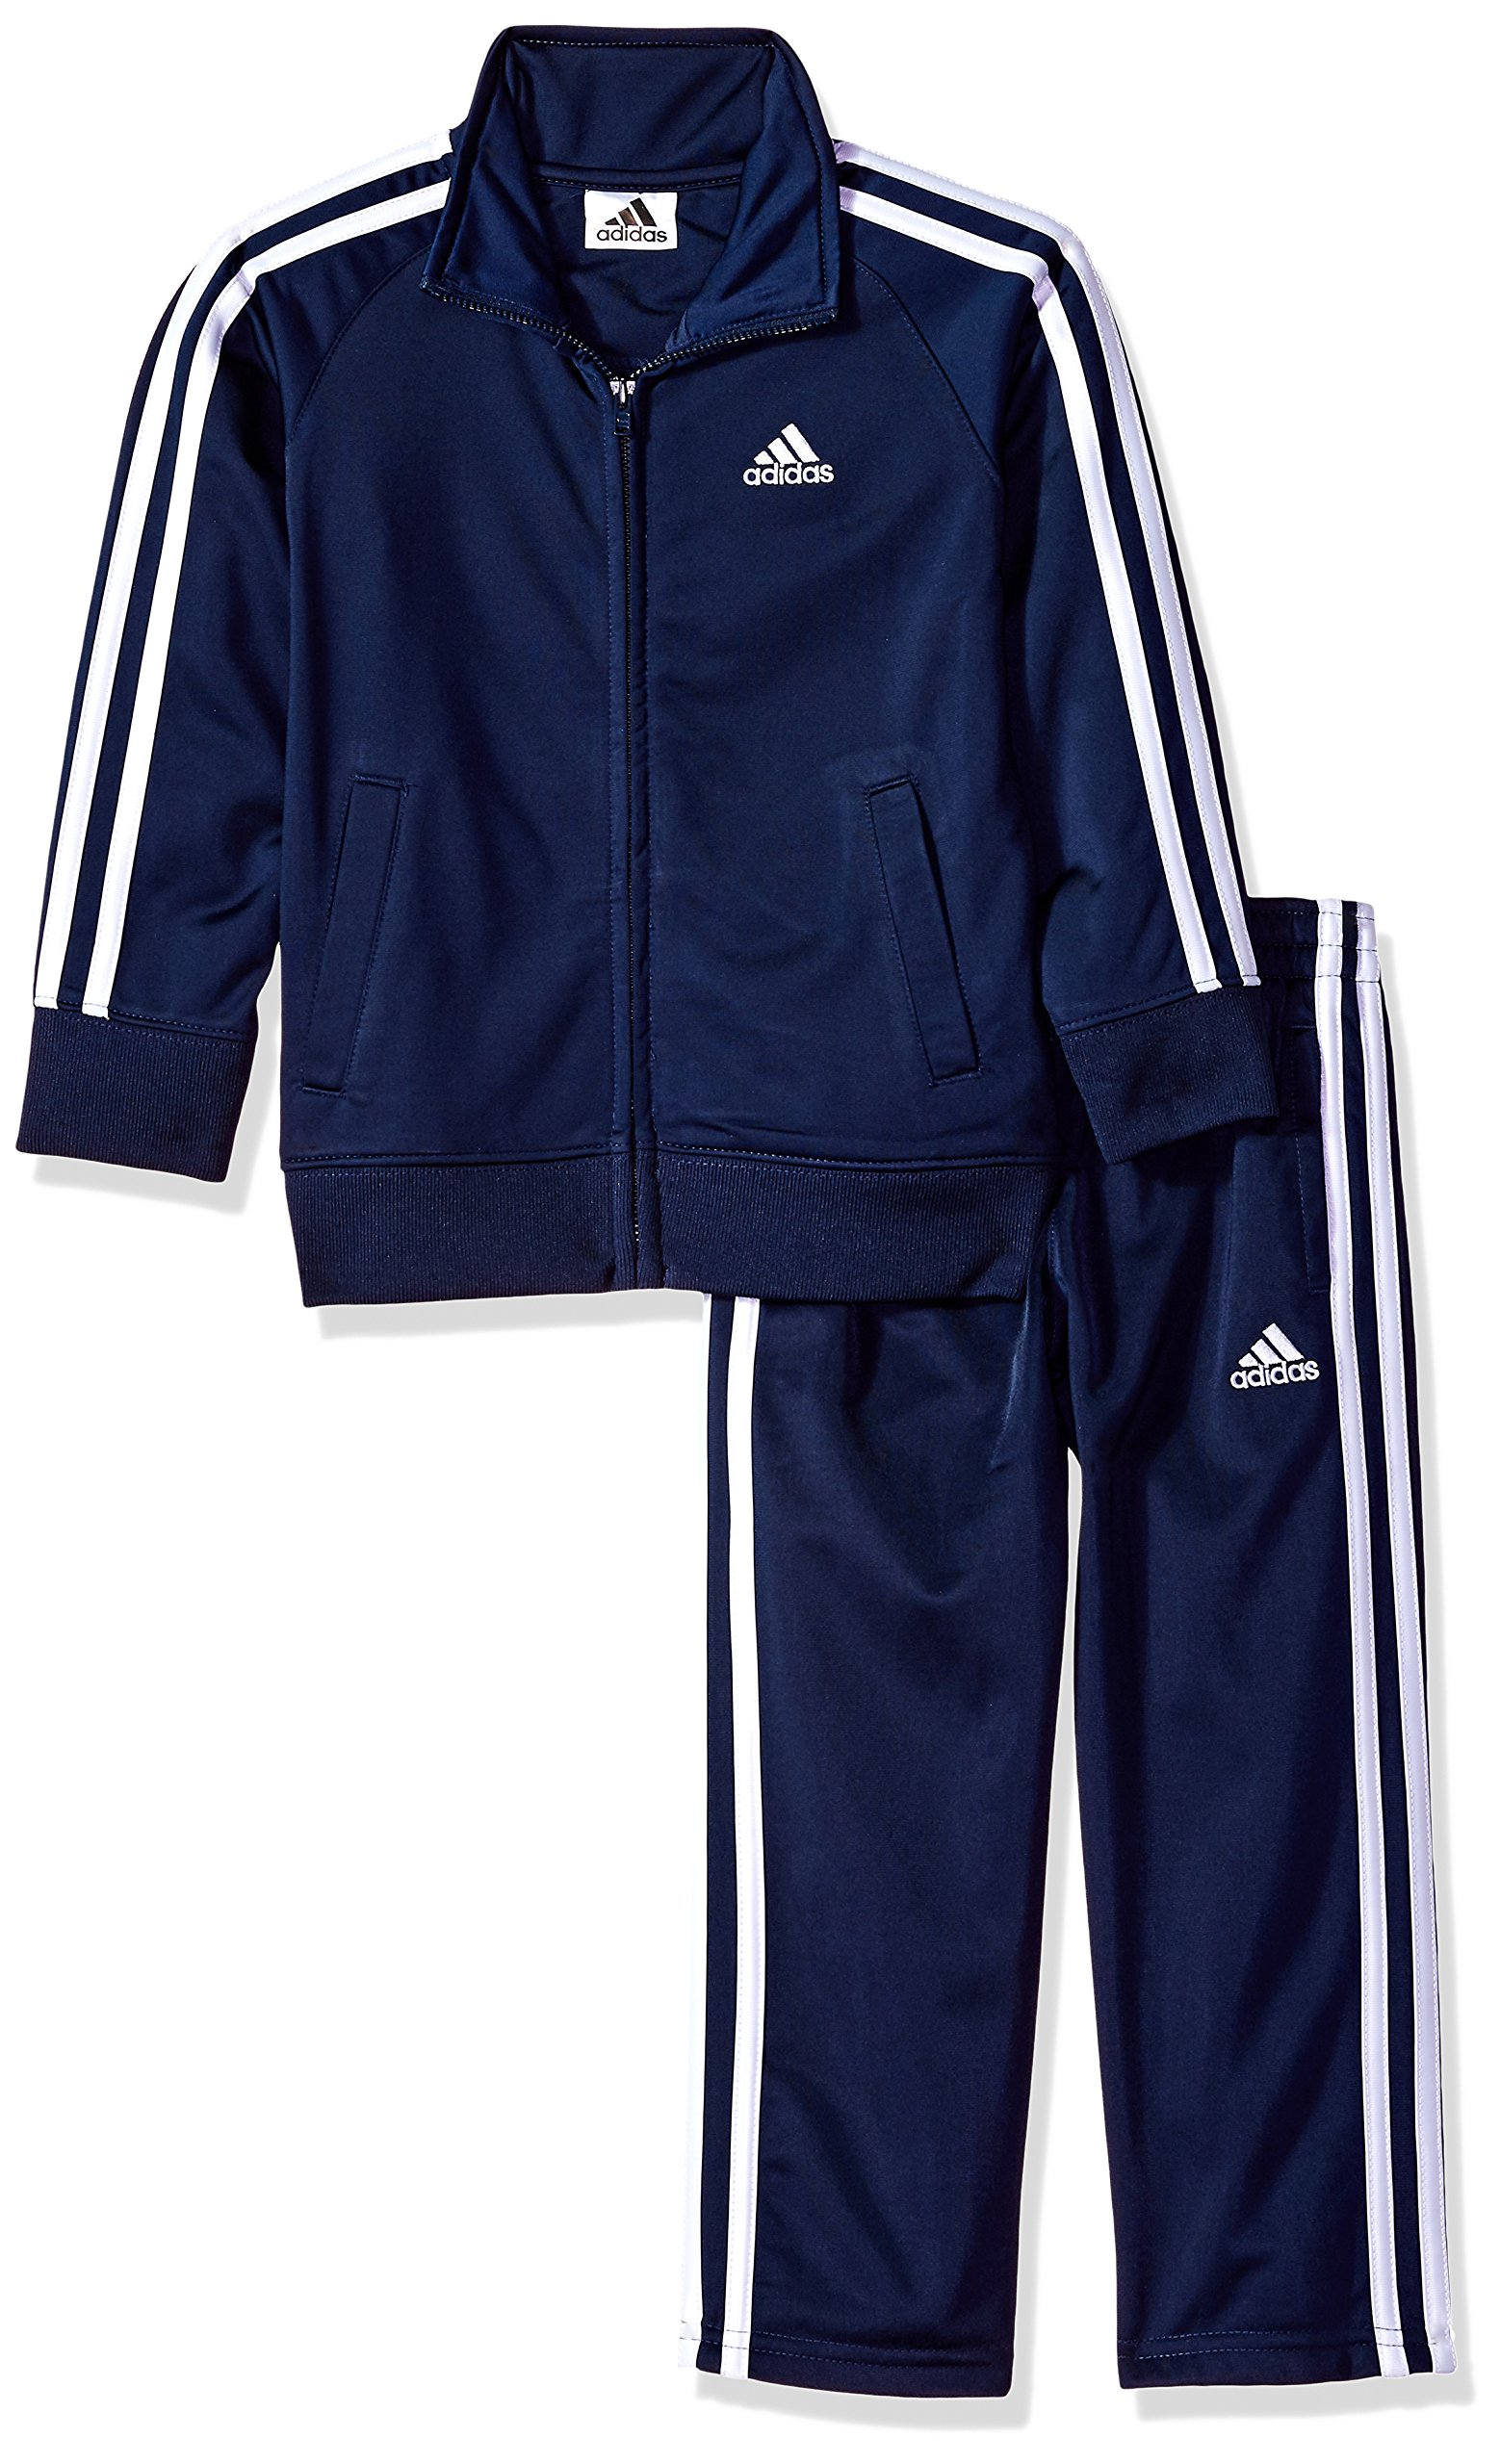 adidas Little Boys' Iconic Tricot Jacket and Pant Set, Navy/White, 6 by adidas